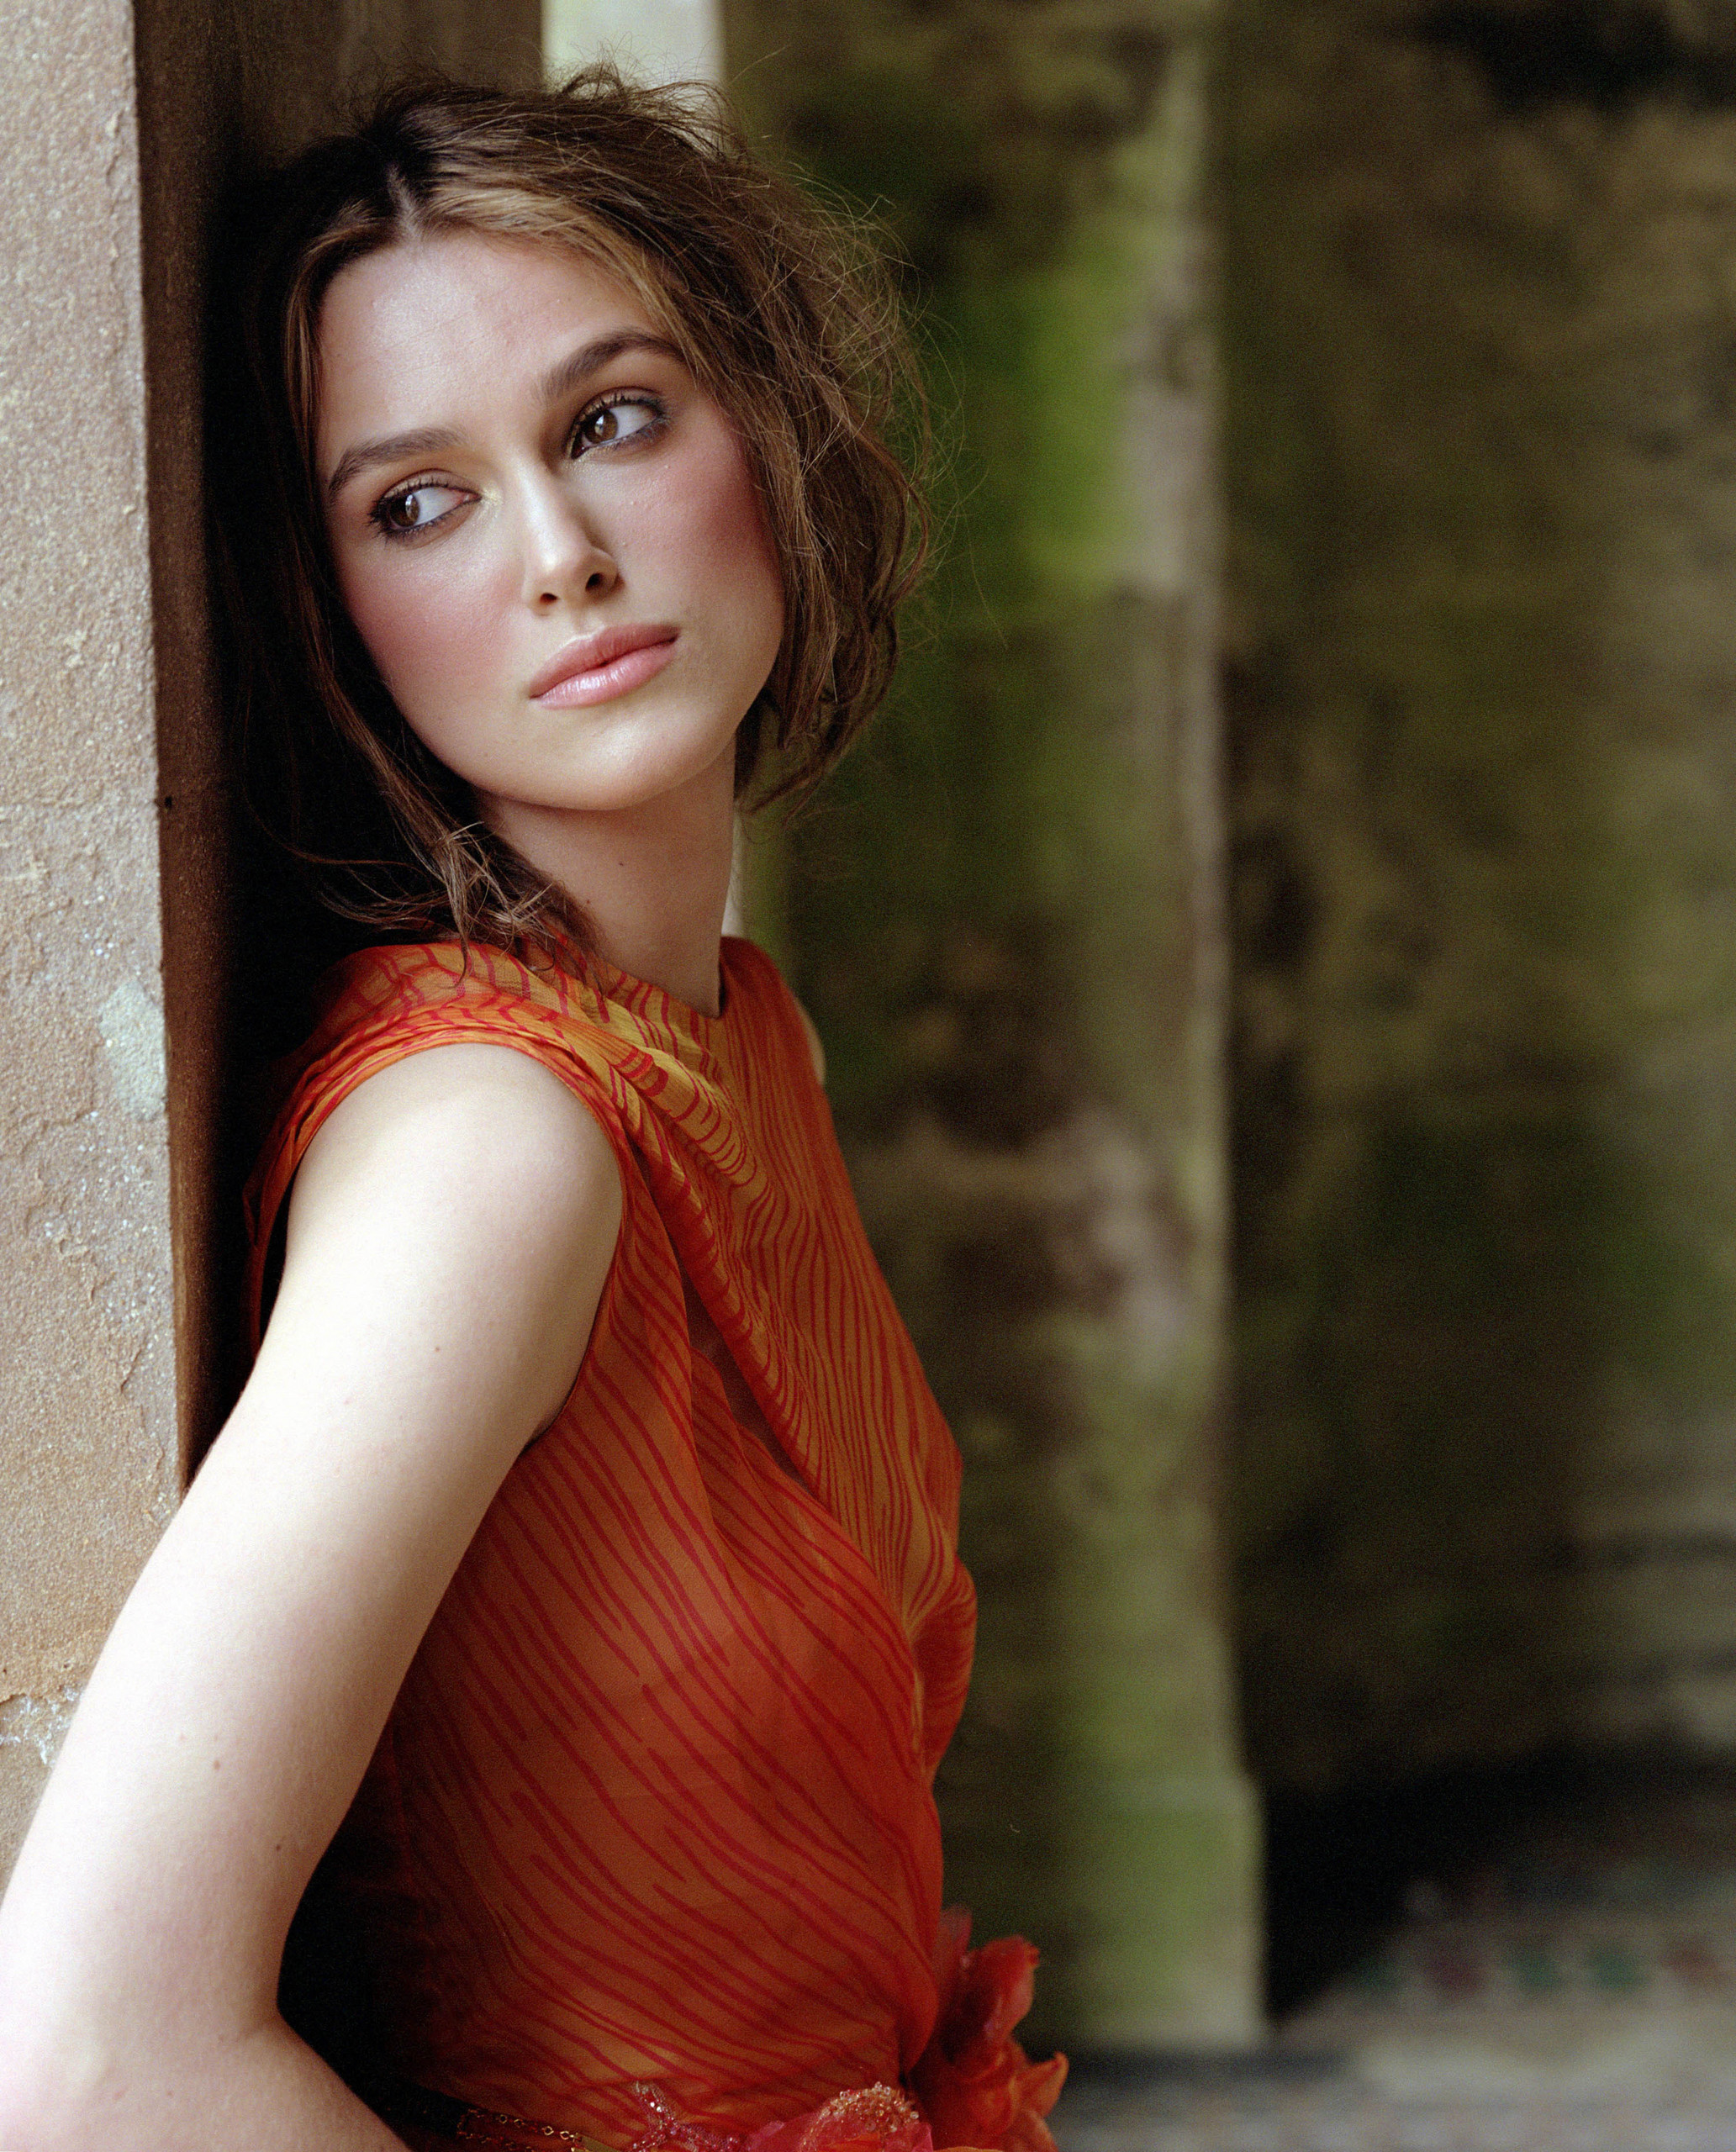 keira knightley video